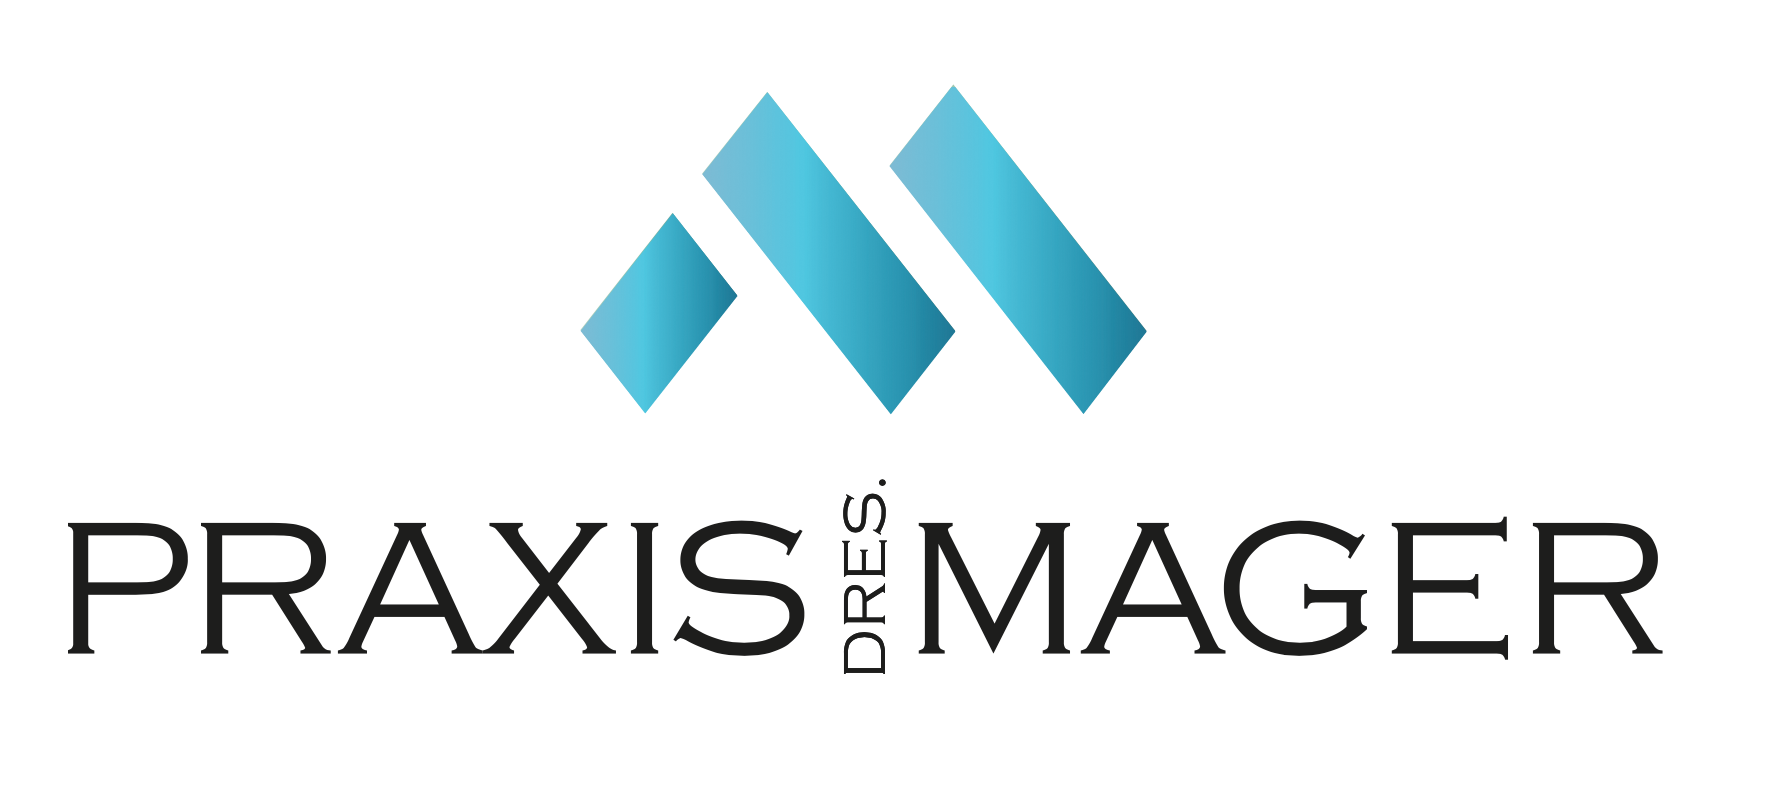 Praxis Dres. Mager